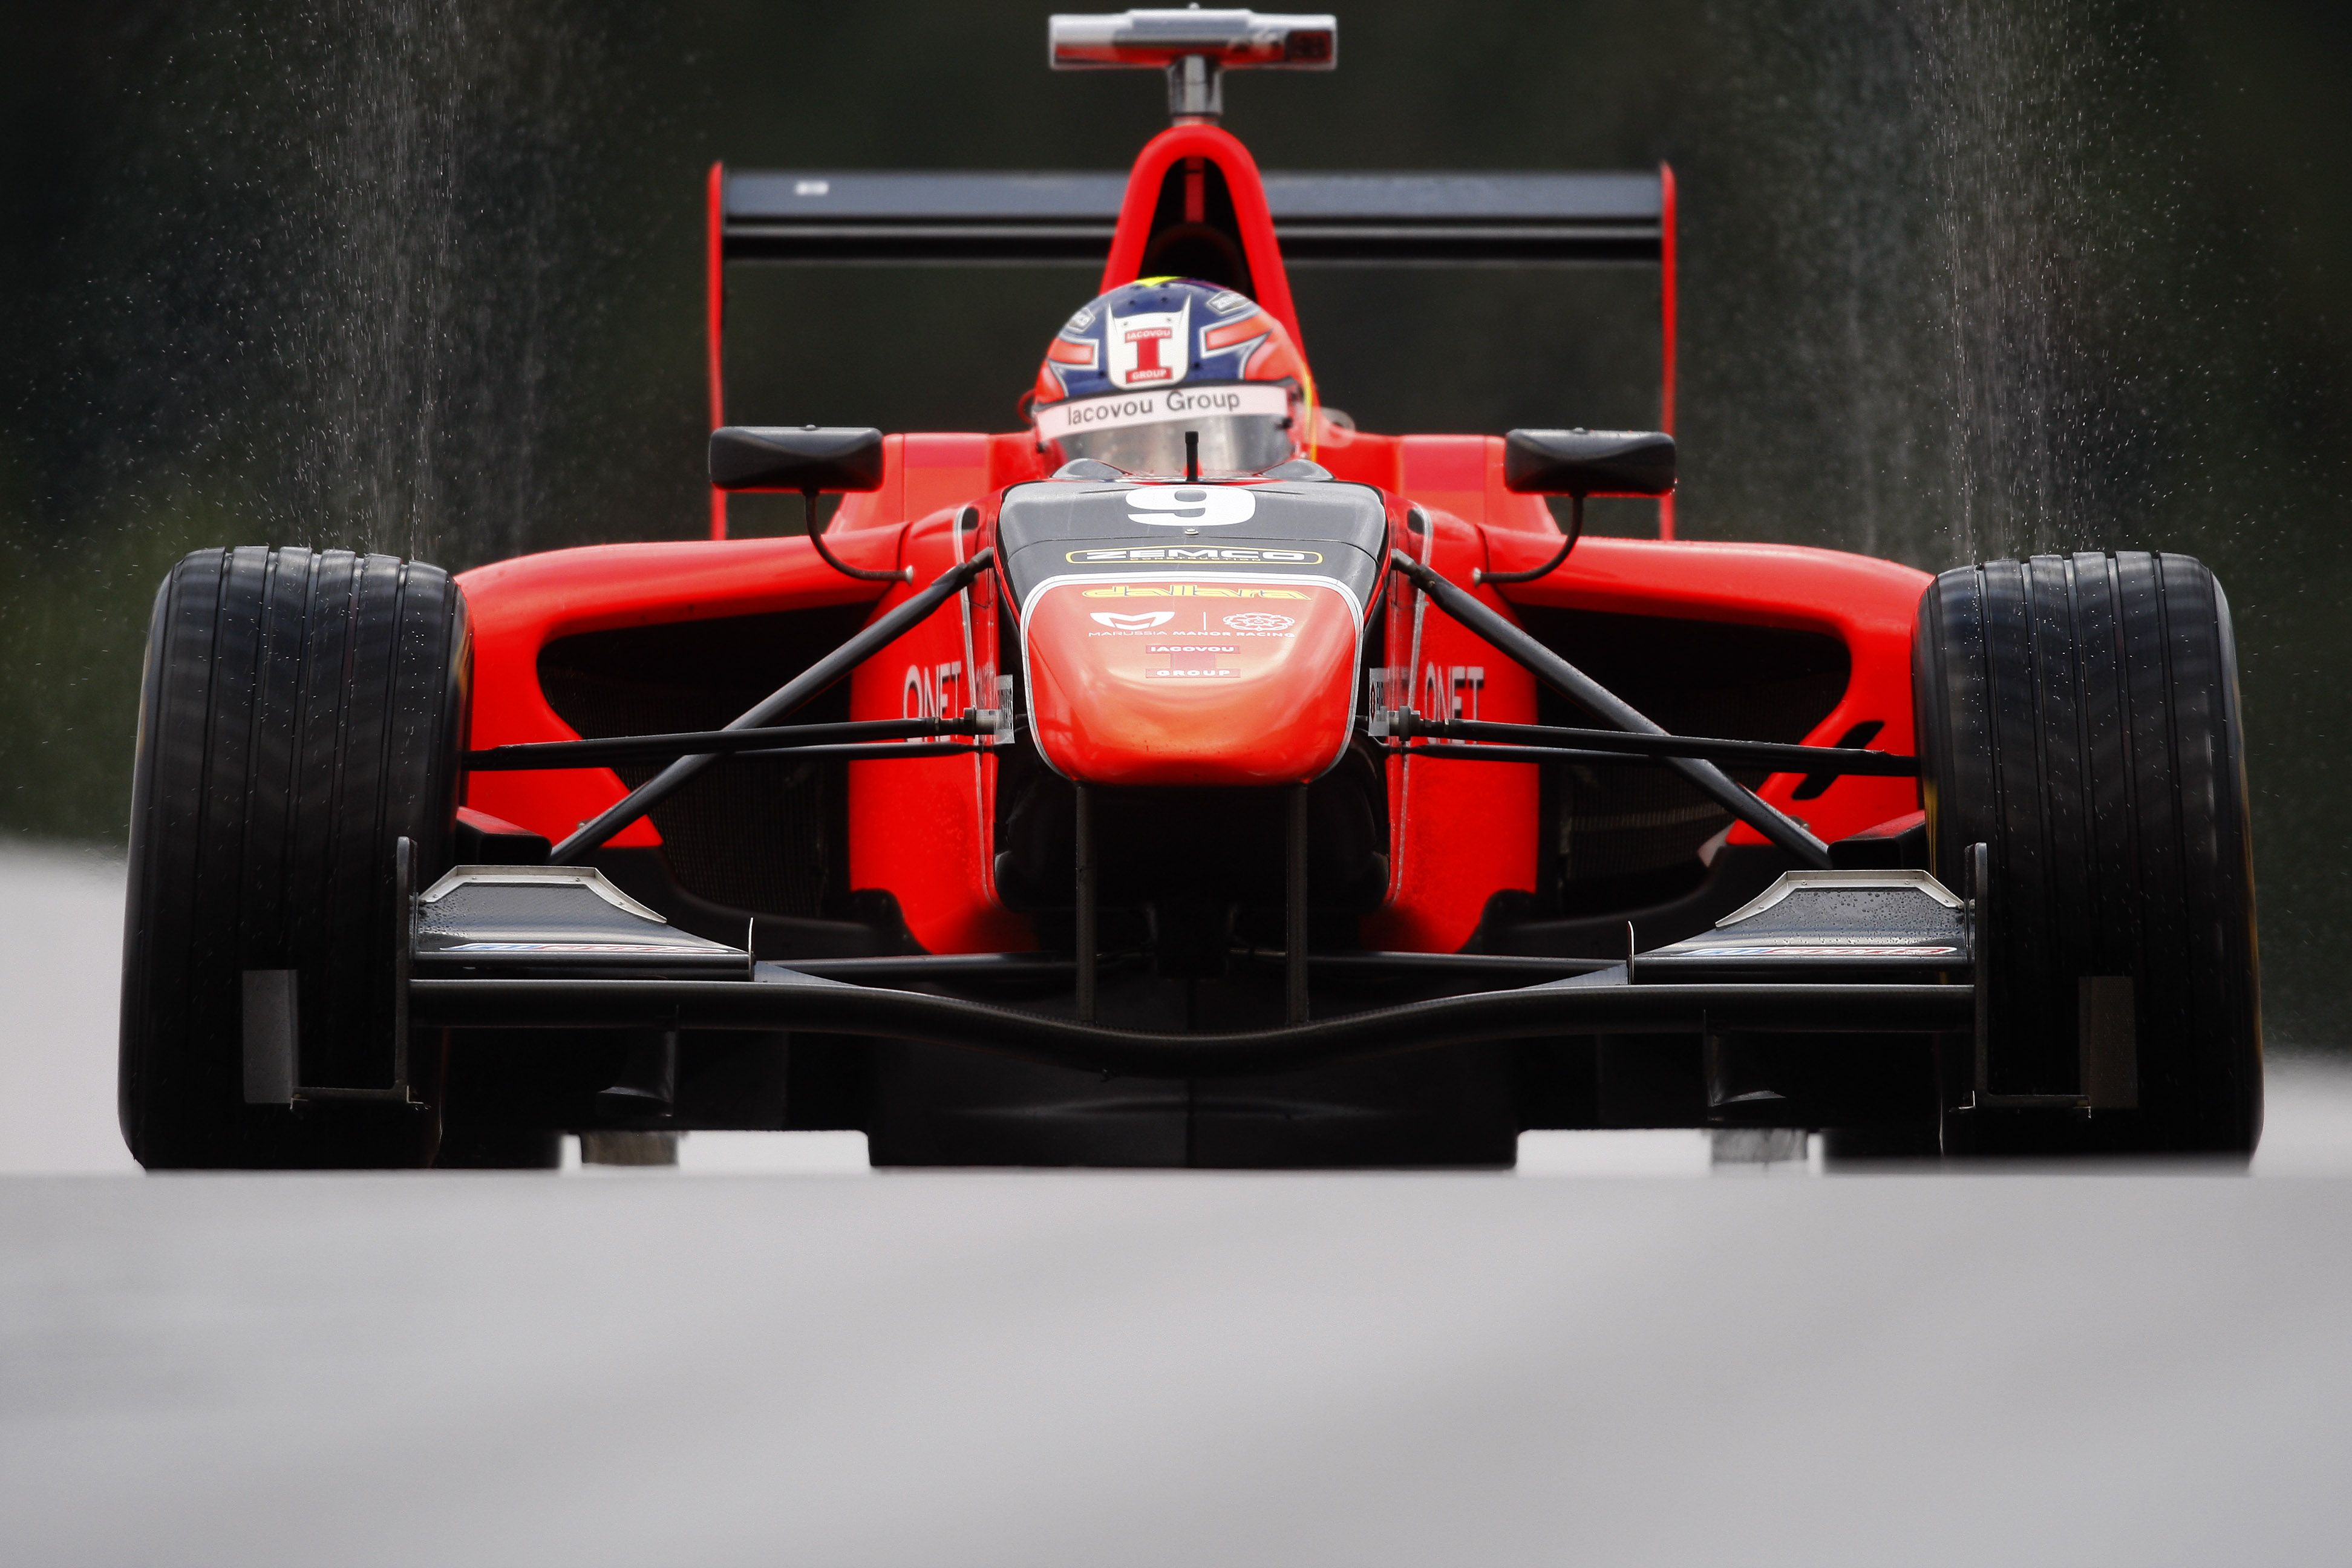 Marussia Manor Creditors Approve Exit from Administration  n7thGear motorsport news F1 news